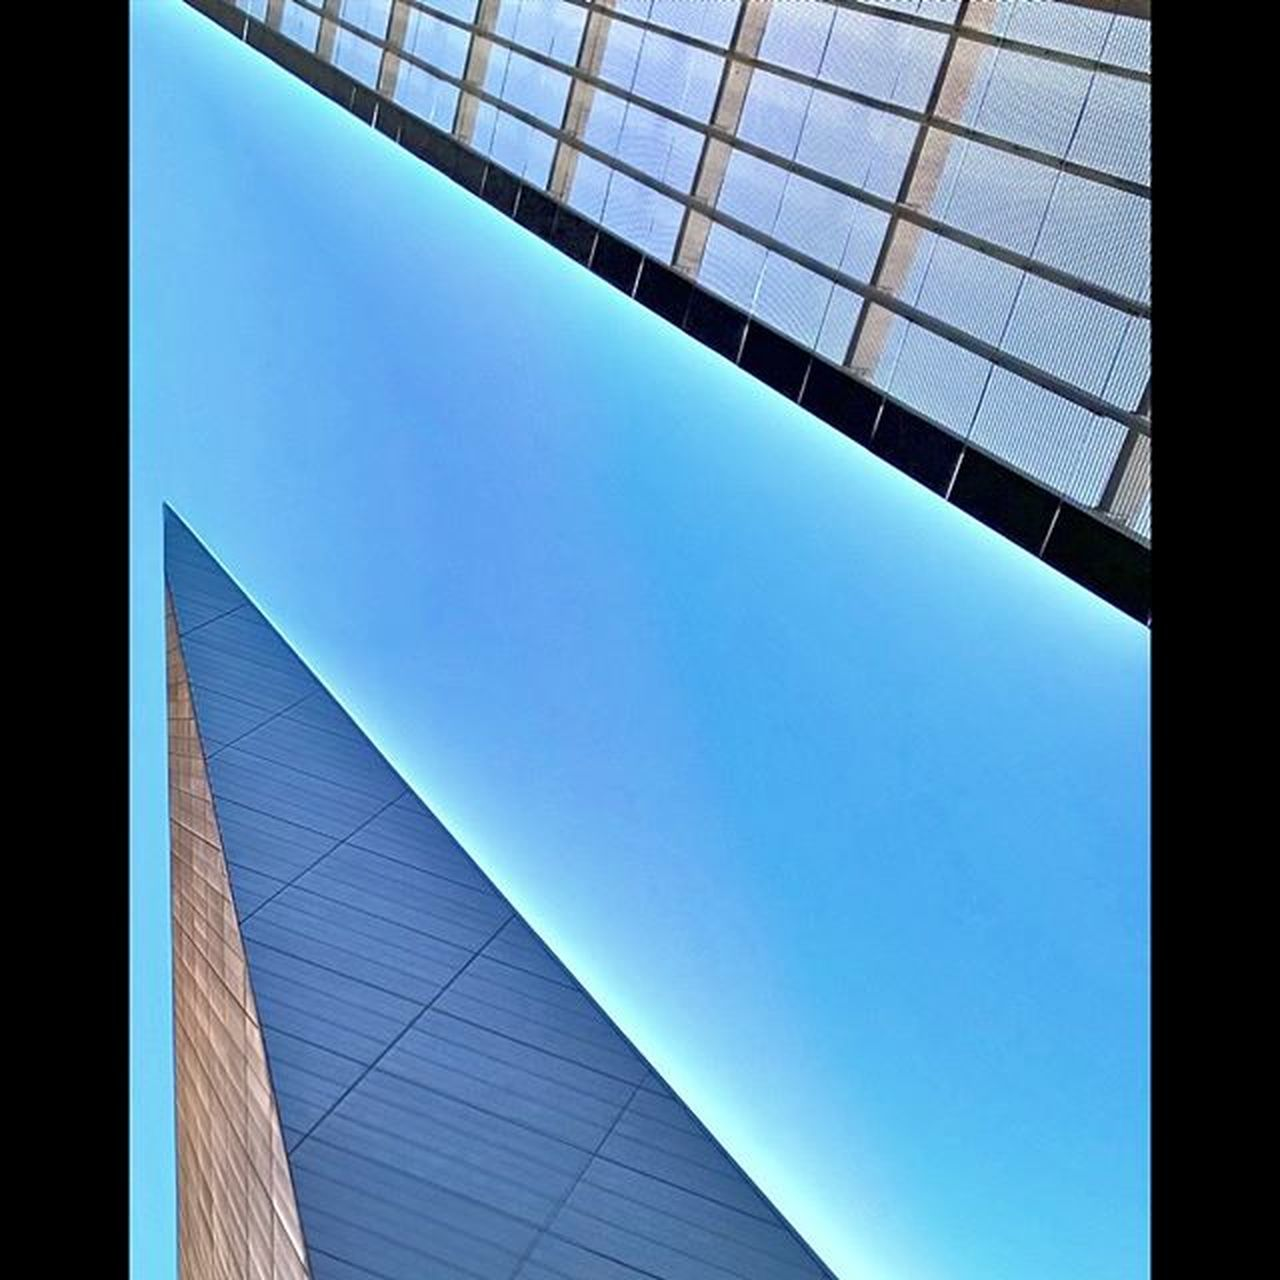 architecture, low angle view, blue, built structure, no people, modern, clear sky, day, skyscraper, sky, building exterior, outdoors, close-up